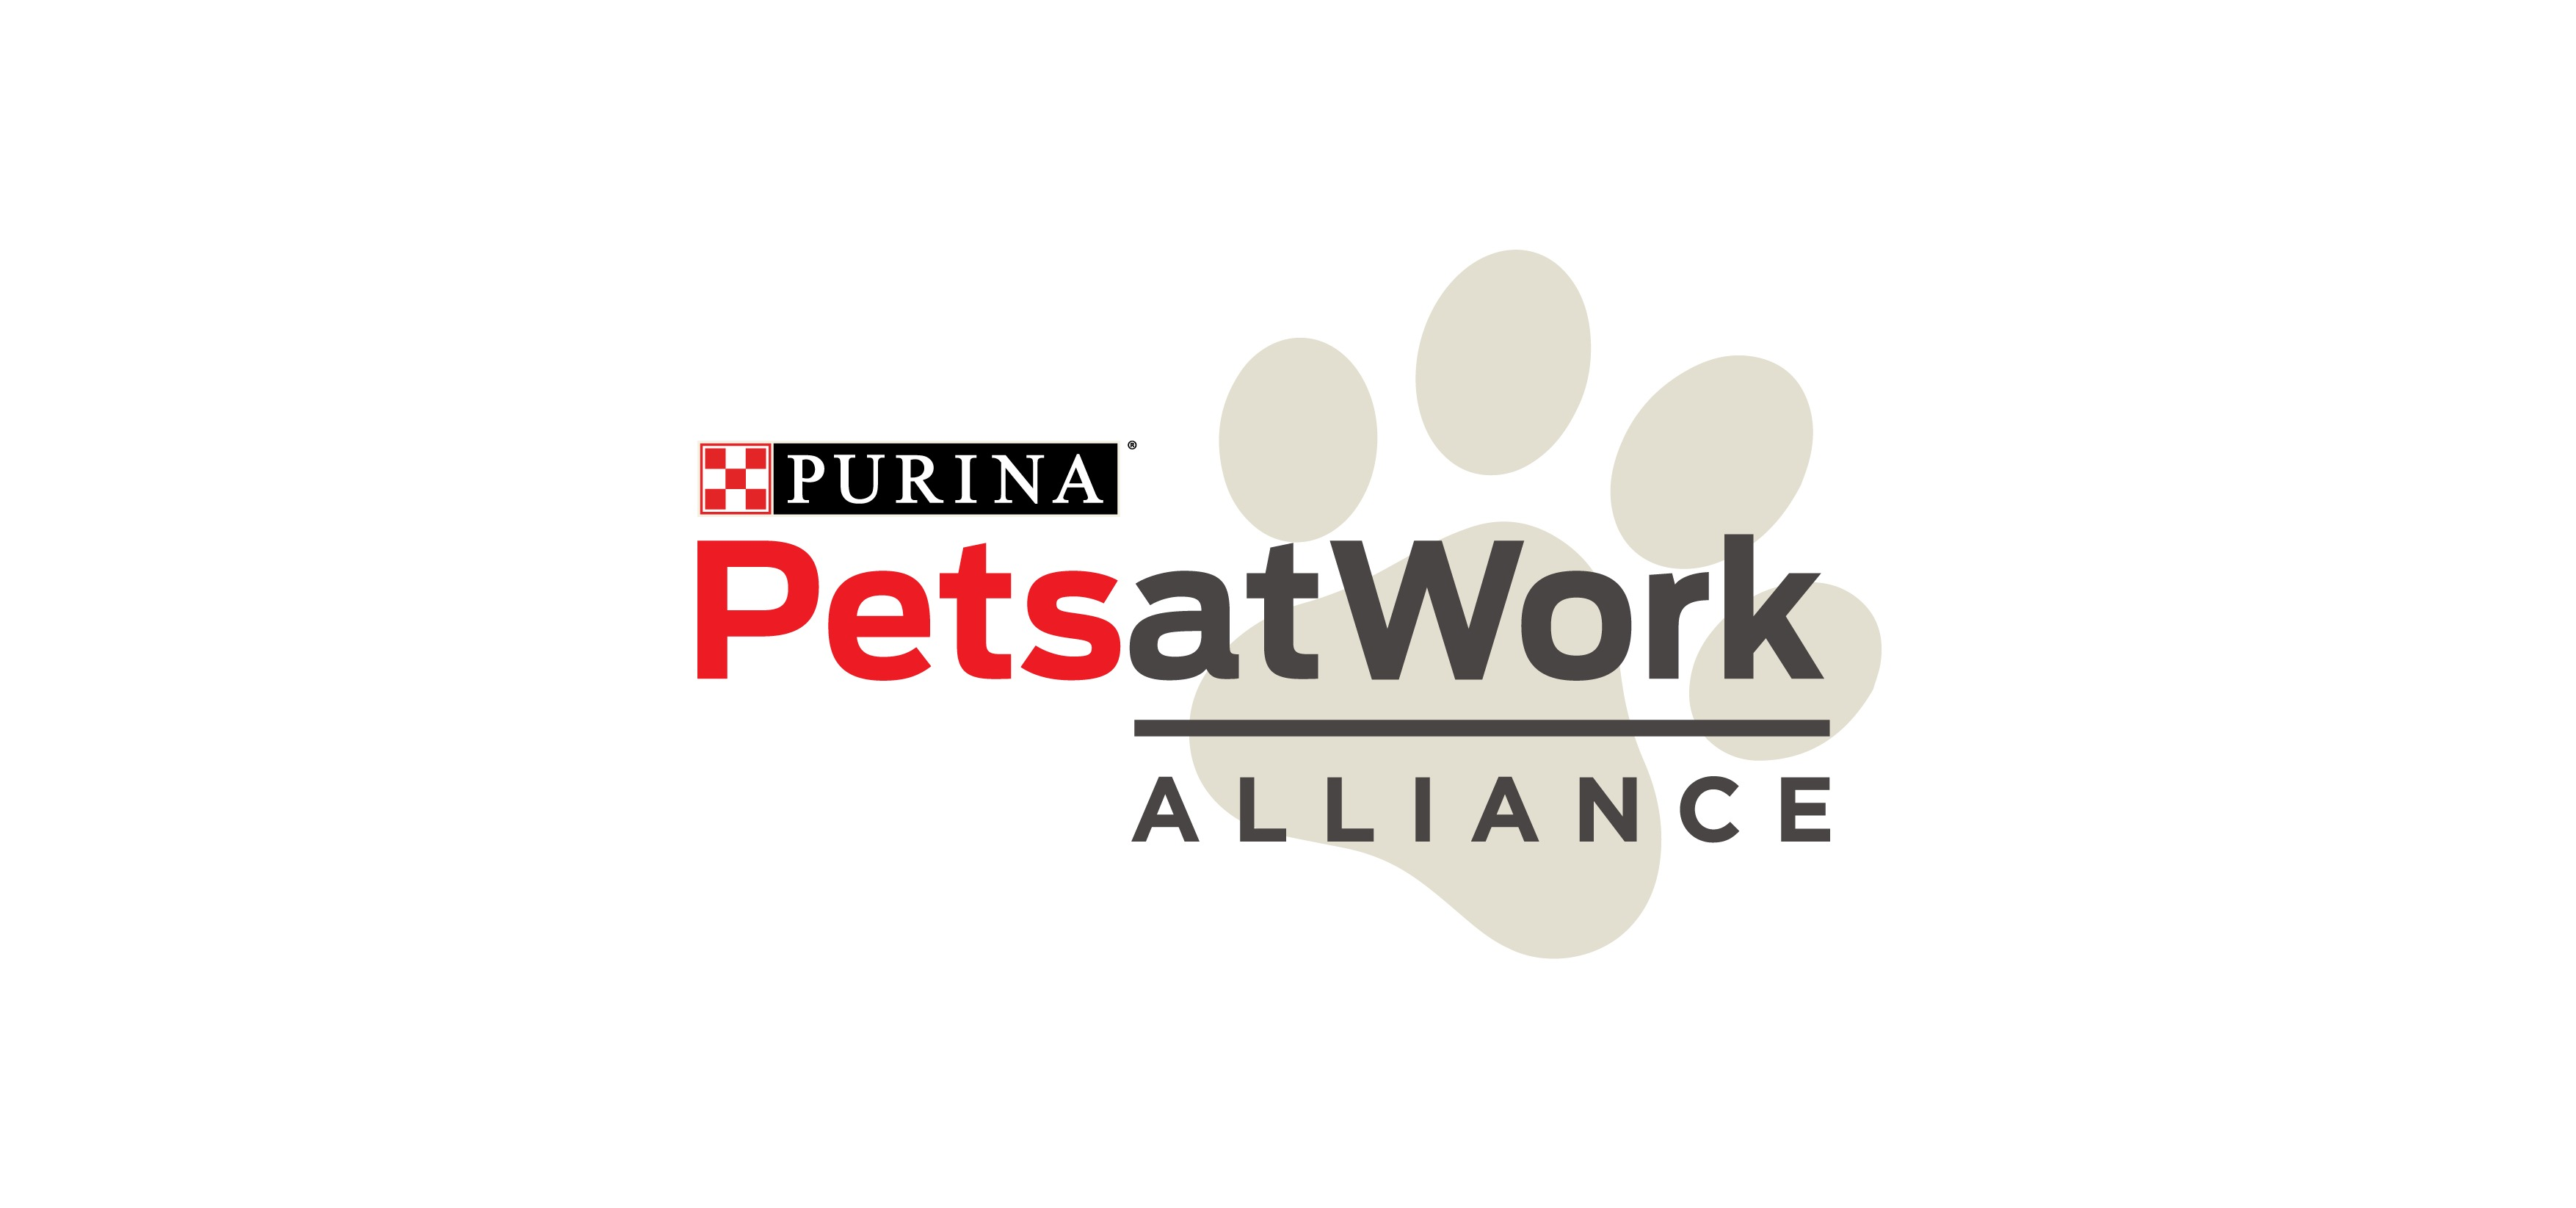 Nestlé PURINA lança a Pets at Work Alliance desafiando empresas a tornarem-se dog-friendly